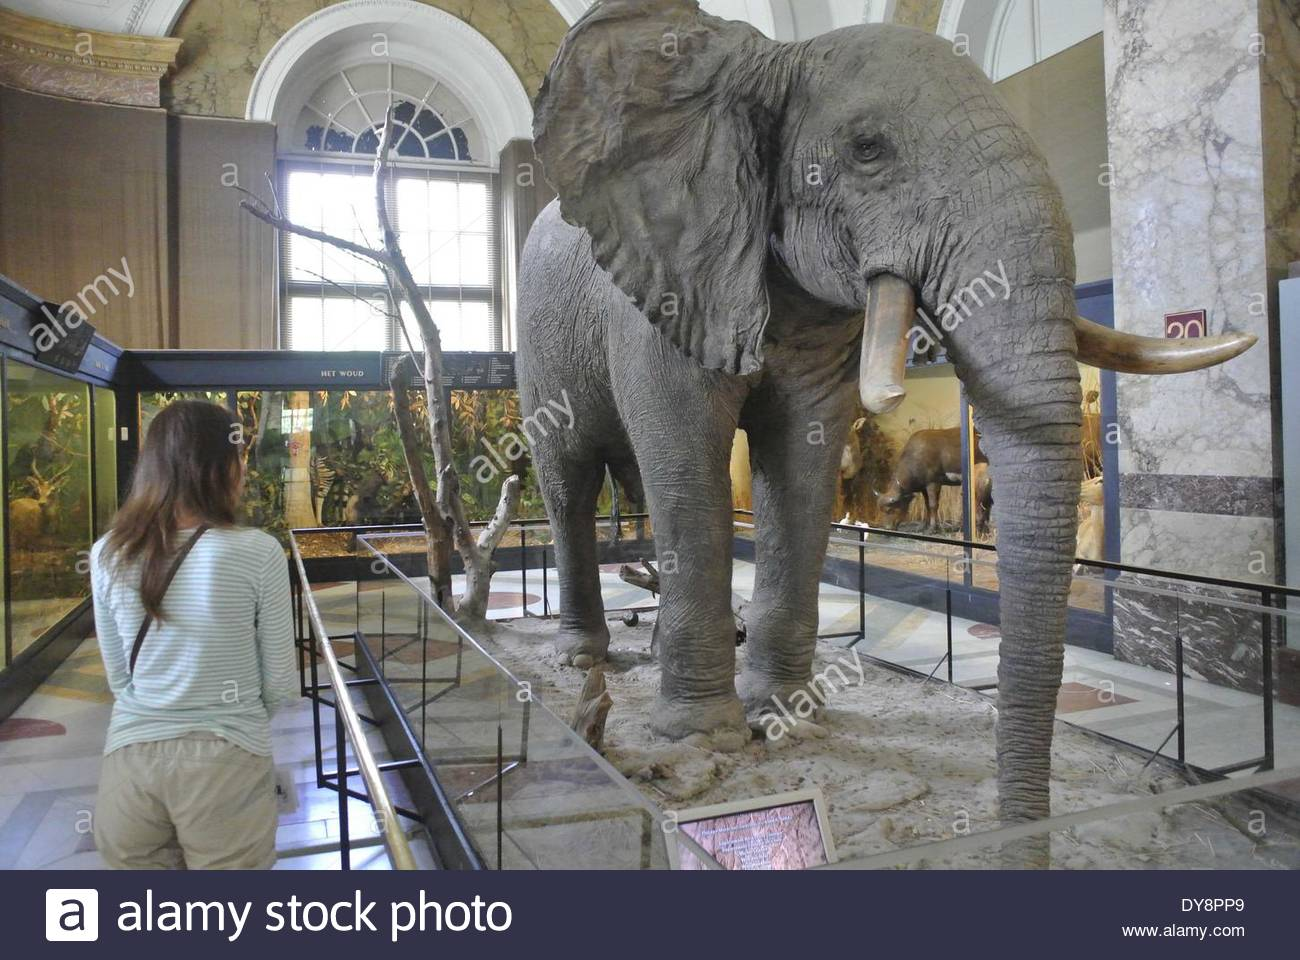 Brussels, Belgium. 25th Aug, 2013. FILE PHOTO - About 1.7 tons of ivory, with an estimated value of 680,000 euros ($930,000) seized over recent years is destroyed today, April 9, 2014, at the Royal Museum for Central Africa. Belgium becomes the latest country to destroy its ivory stockpile as Europe takes a harder look at wildlife trafficking. Reports say, 36.500 elephants are killed for their ivory every year. Ambassadors and dignitaries from various nations, including from the U.S., France, the U.K., and the key elephant-range states of Tanzania and South Africa attended the event. The - Stock Image